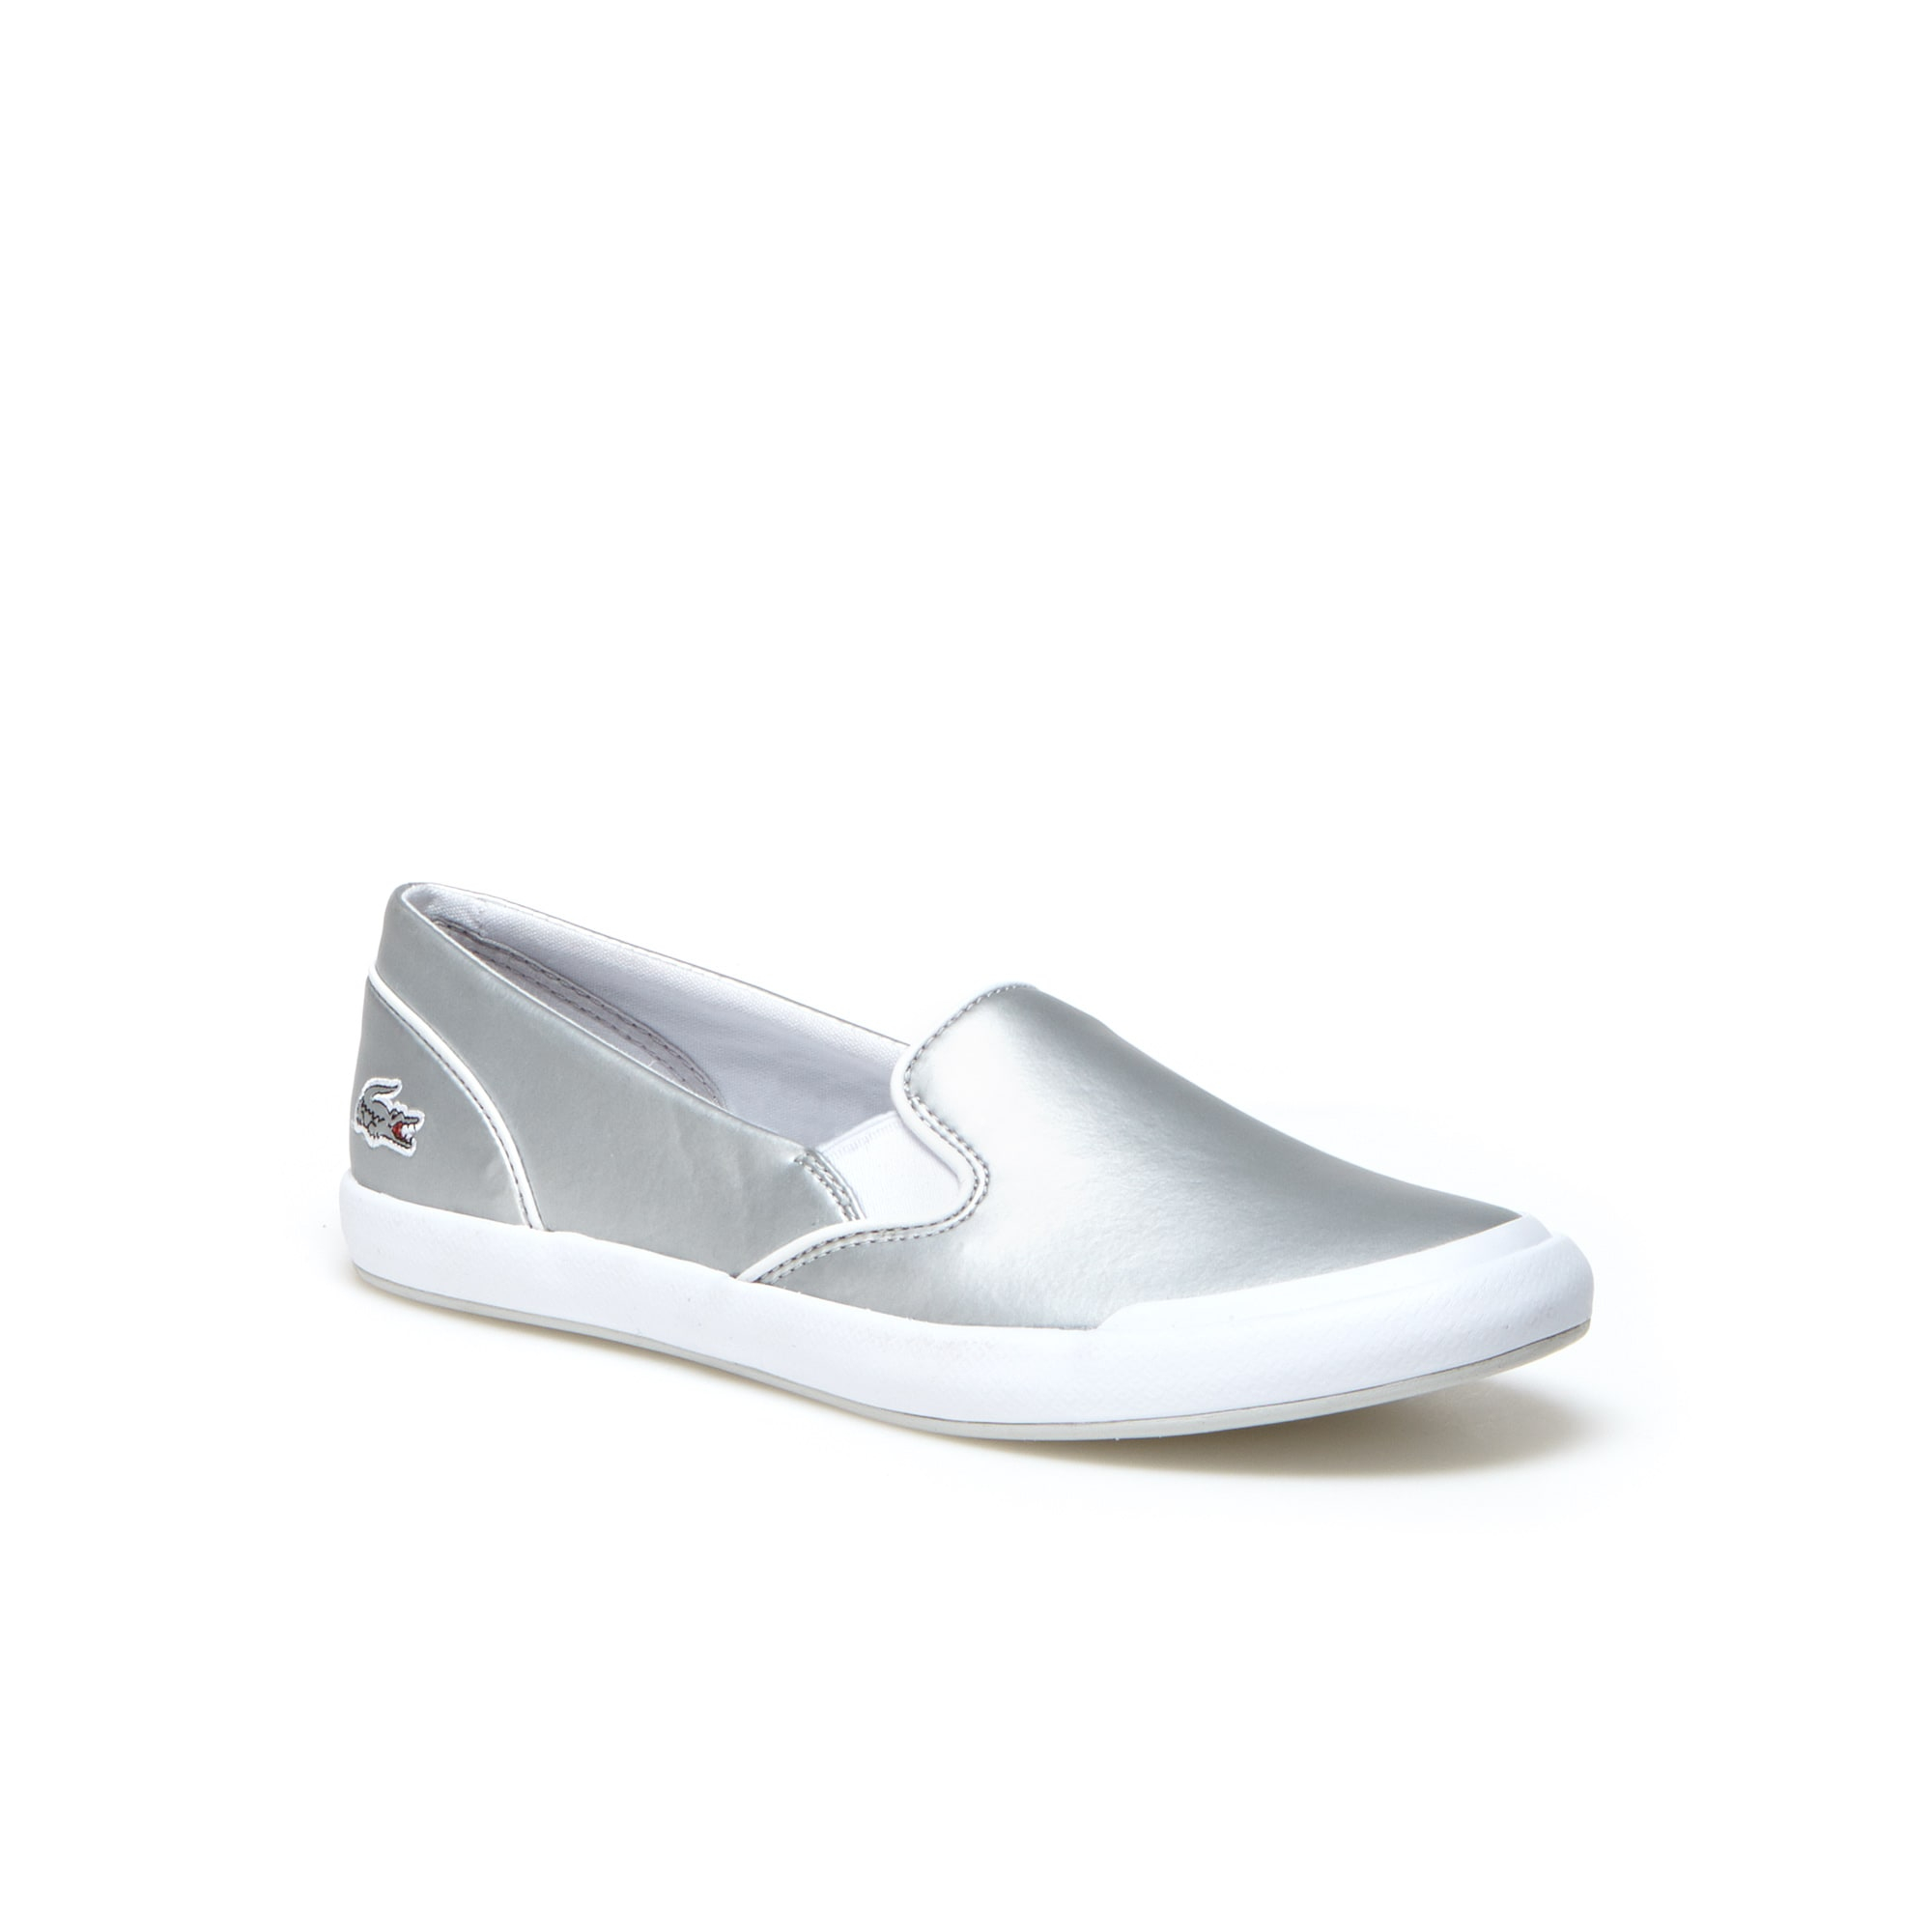 Lancelle Slip-on Leather Sneakers | LACOSTE